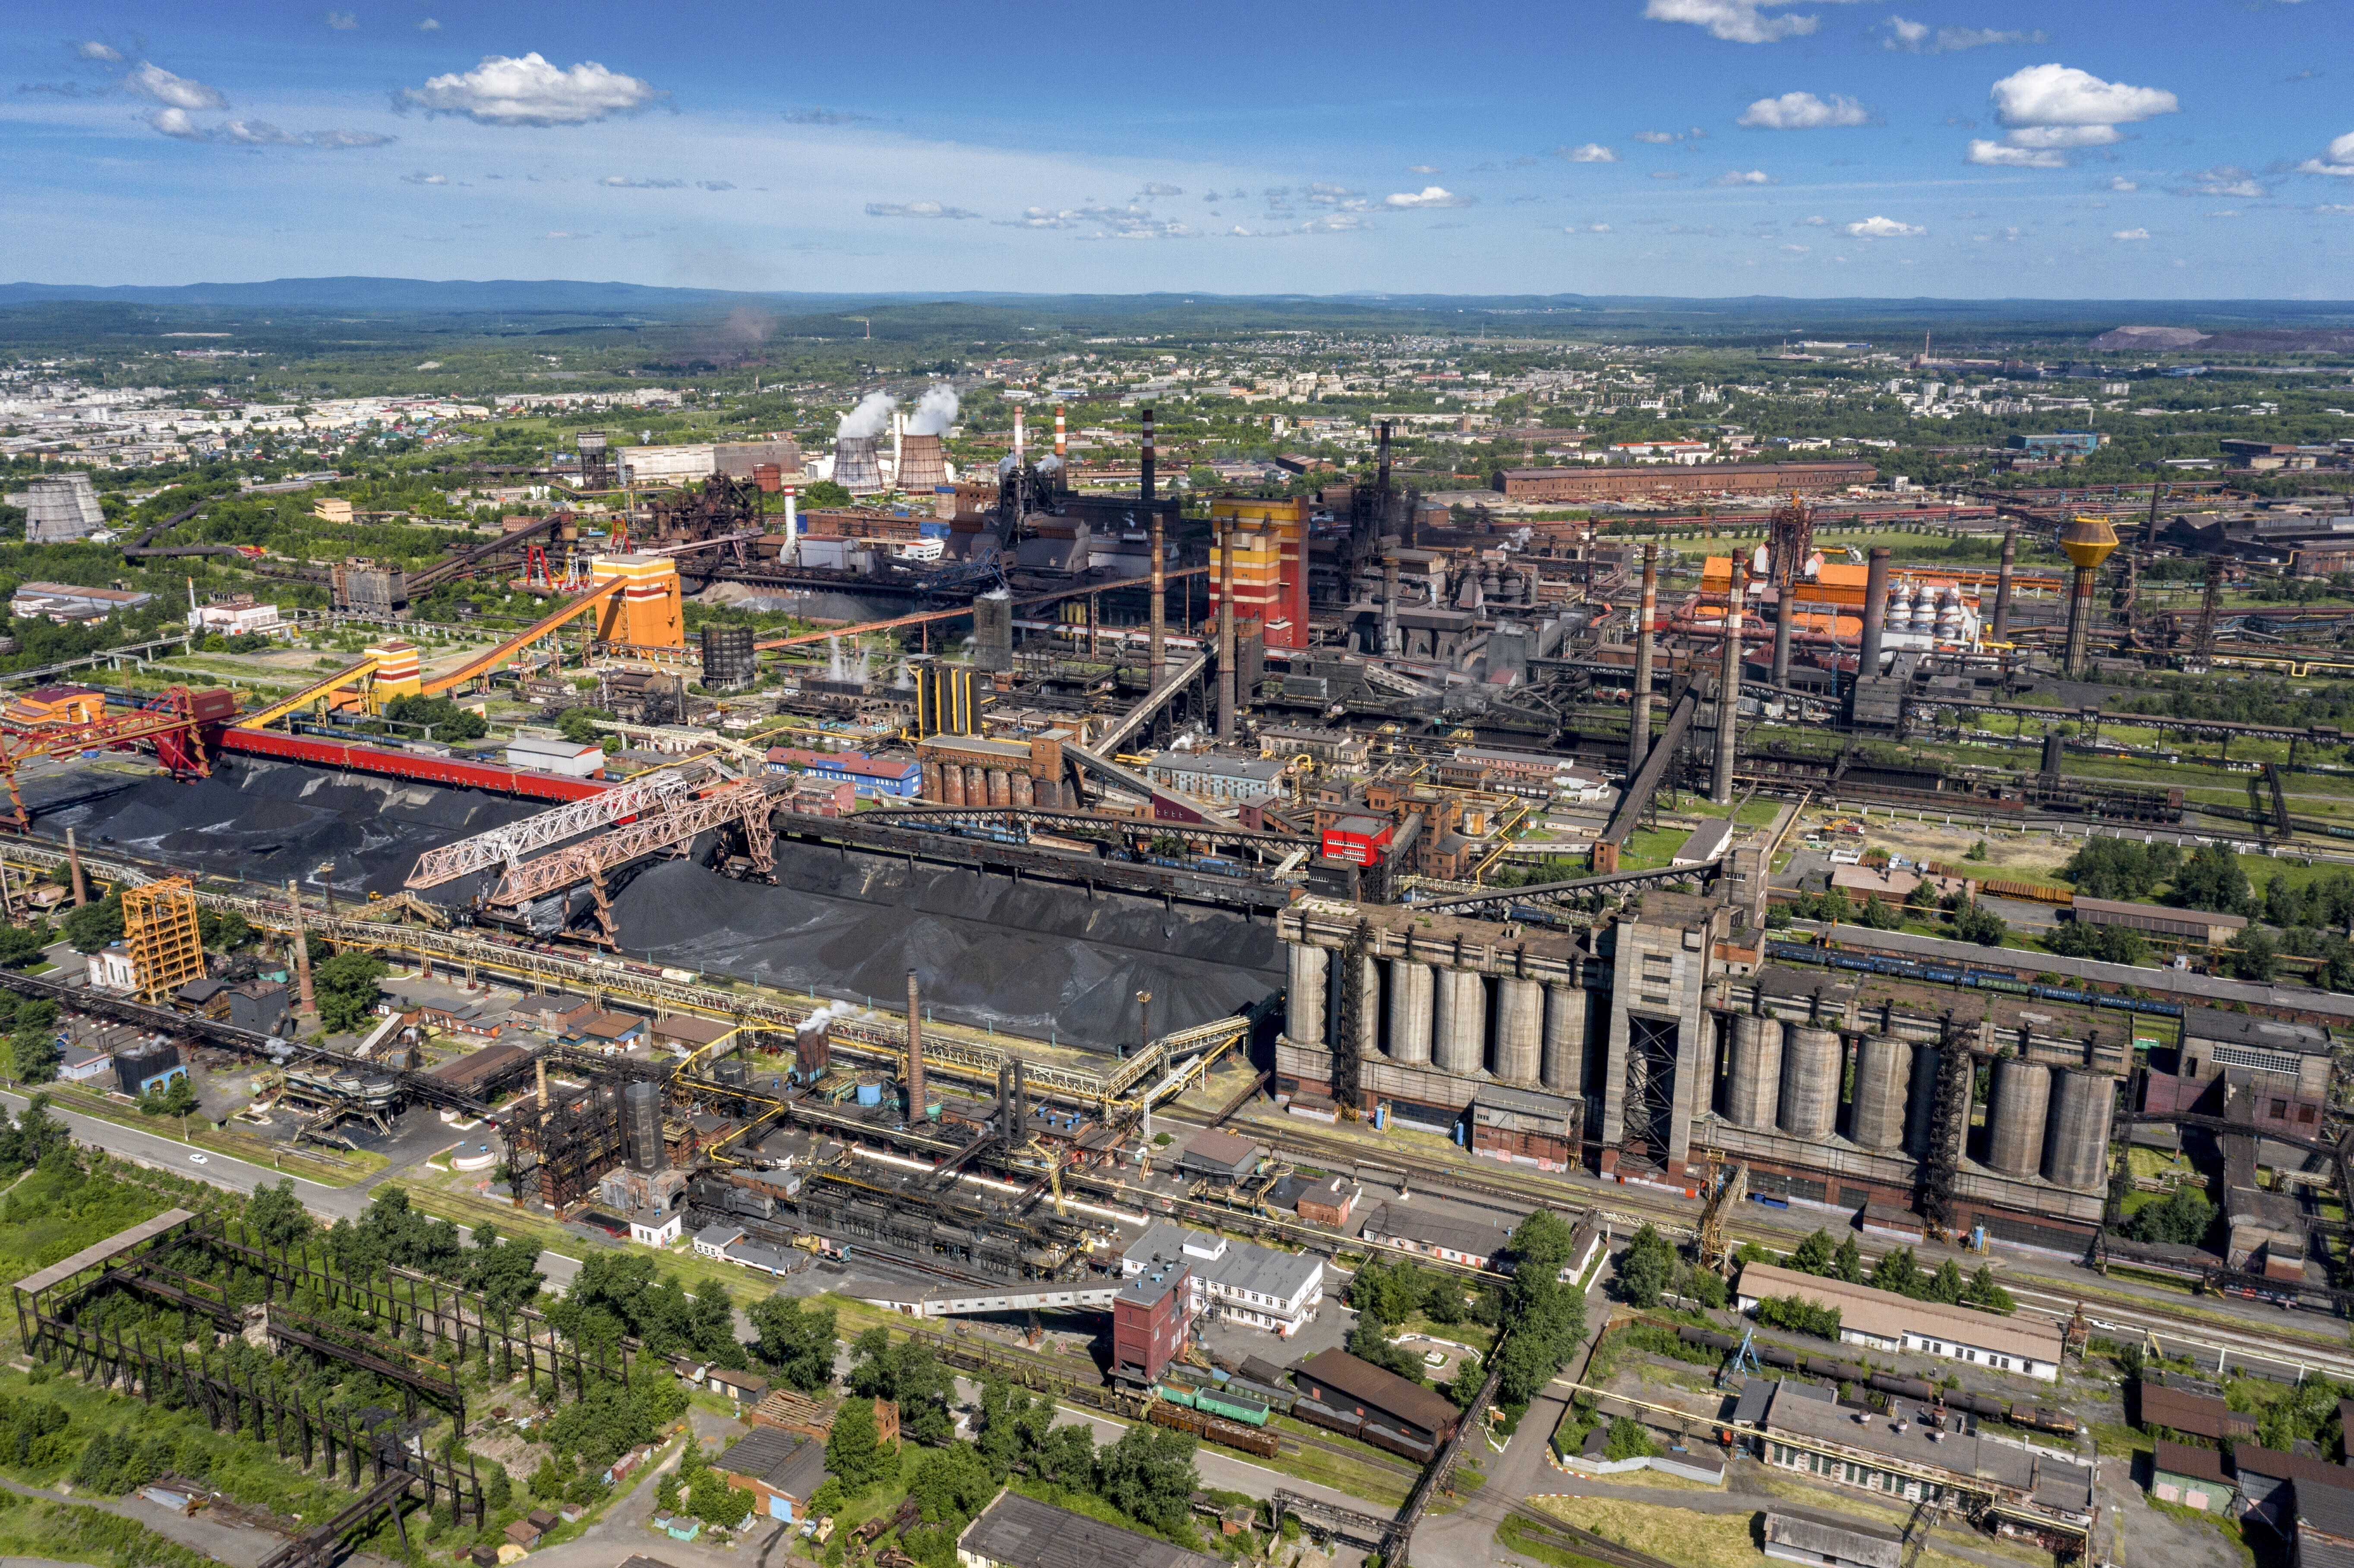 """This June 6, 2020, photo, shows the industrial area of Nizhny Tagil, some 1,400 kilometers (870 miles) east of Moscow, Russia. In 2011, the city became known as """"Putingrad"""" for its residents' fervent support of Russian President Vladimir Putin. Workers who once defended Putin now are speaking out against the constitutional reforms that would allow him to stay in office until 2036, saying economic conditions have worsened during his tenure. (AP Photo/Anton Basanayev)"""